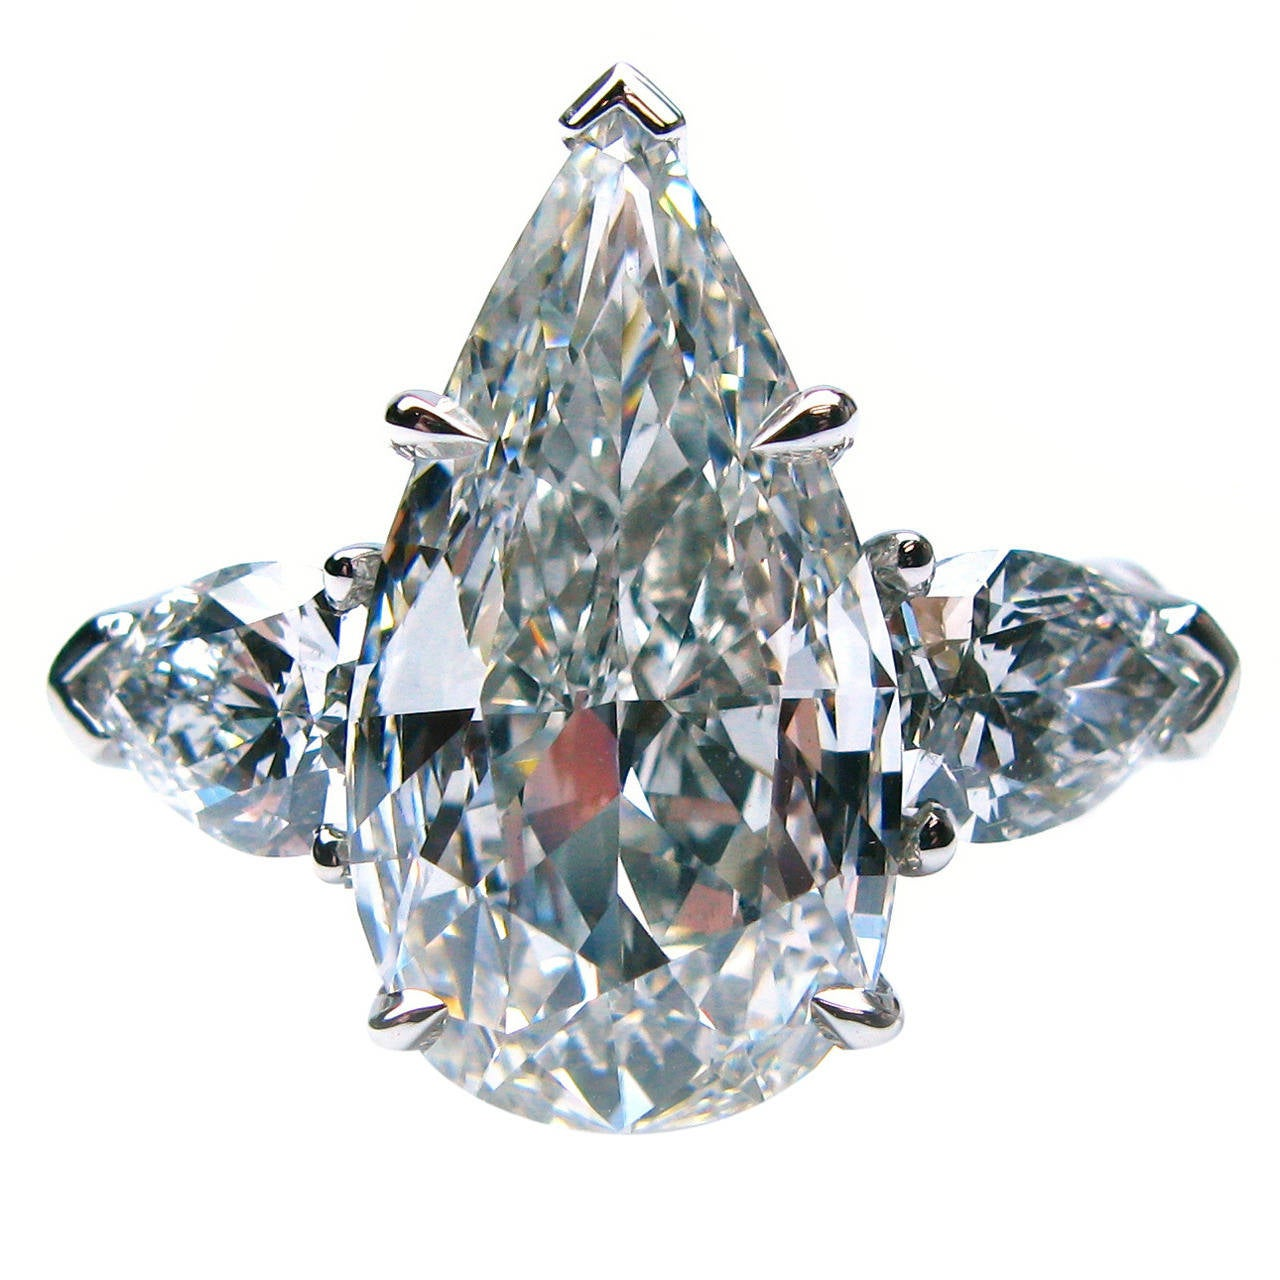 5 01 Carat Pear Shaped Diamond Platinum Ring For Sale At